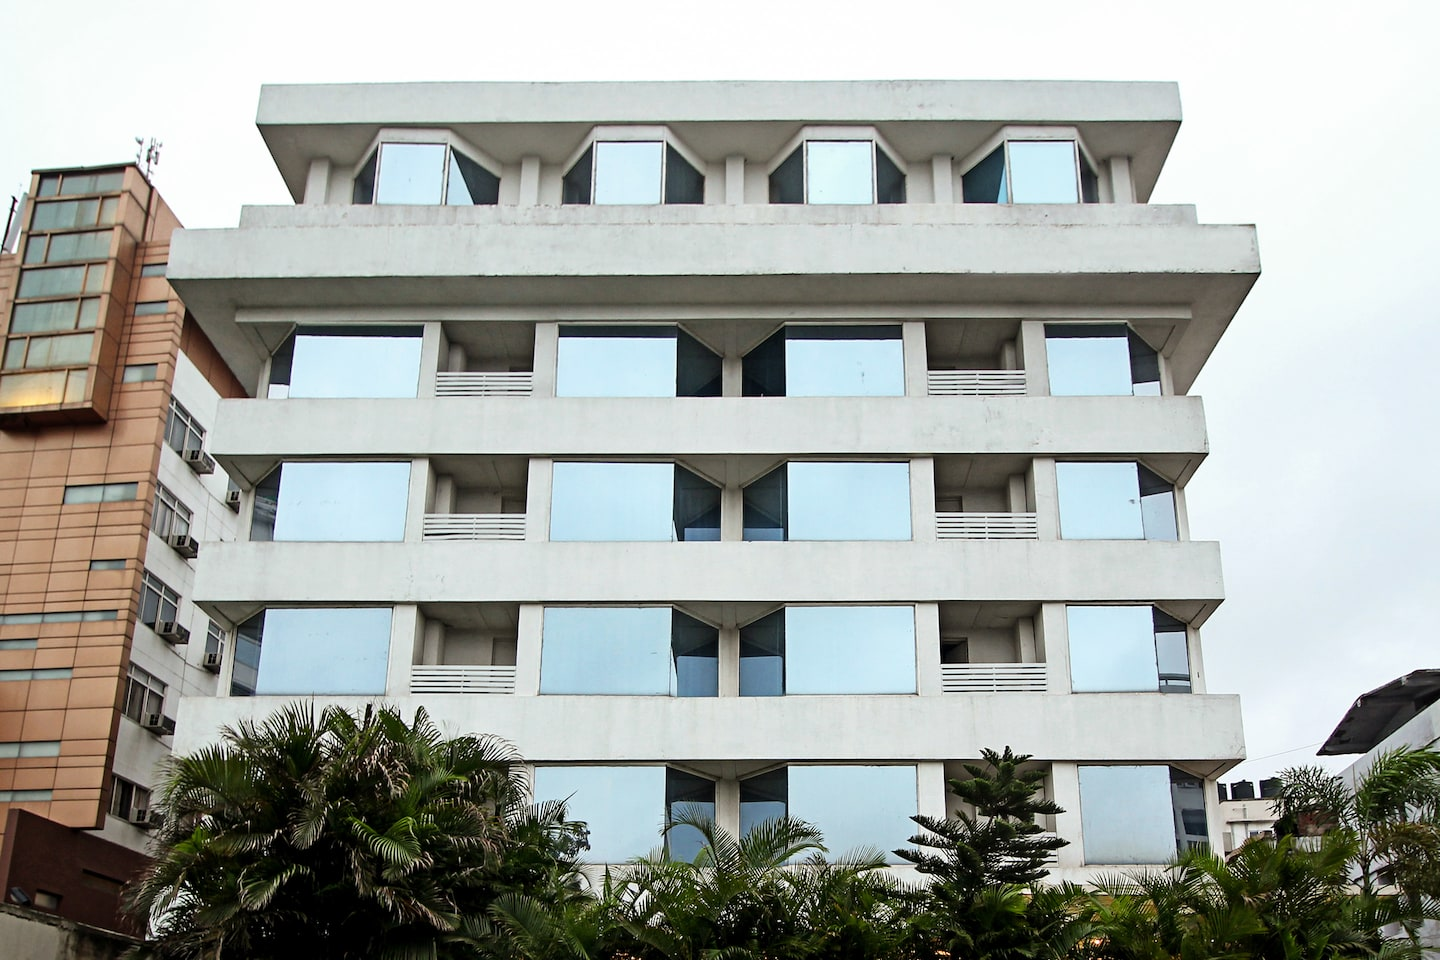 Oyo 1374 Hotel The Elements in Ranchi